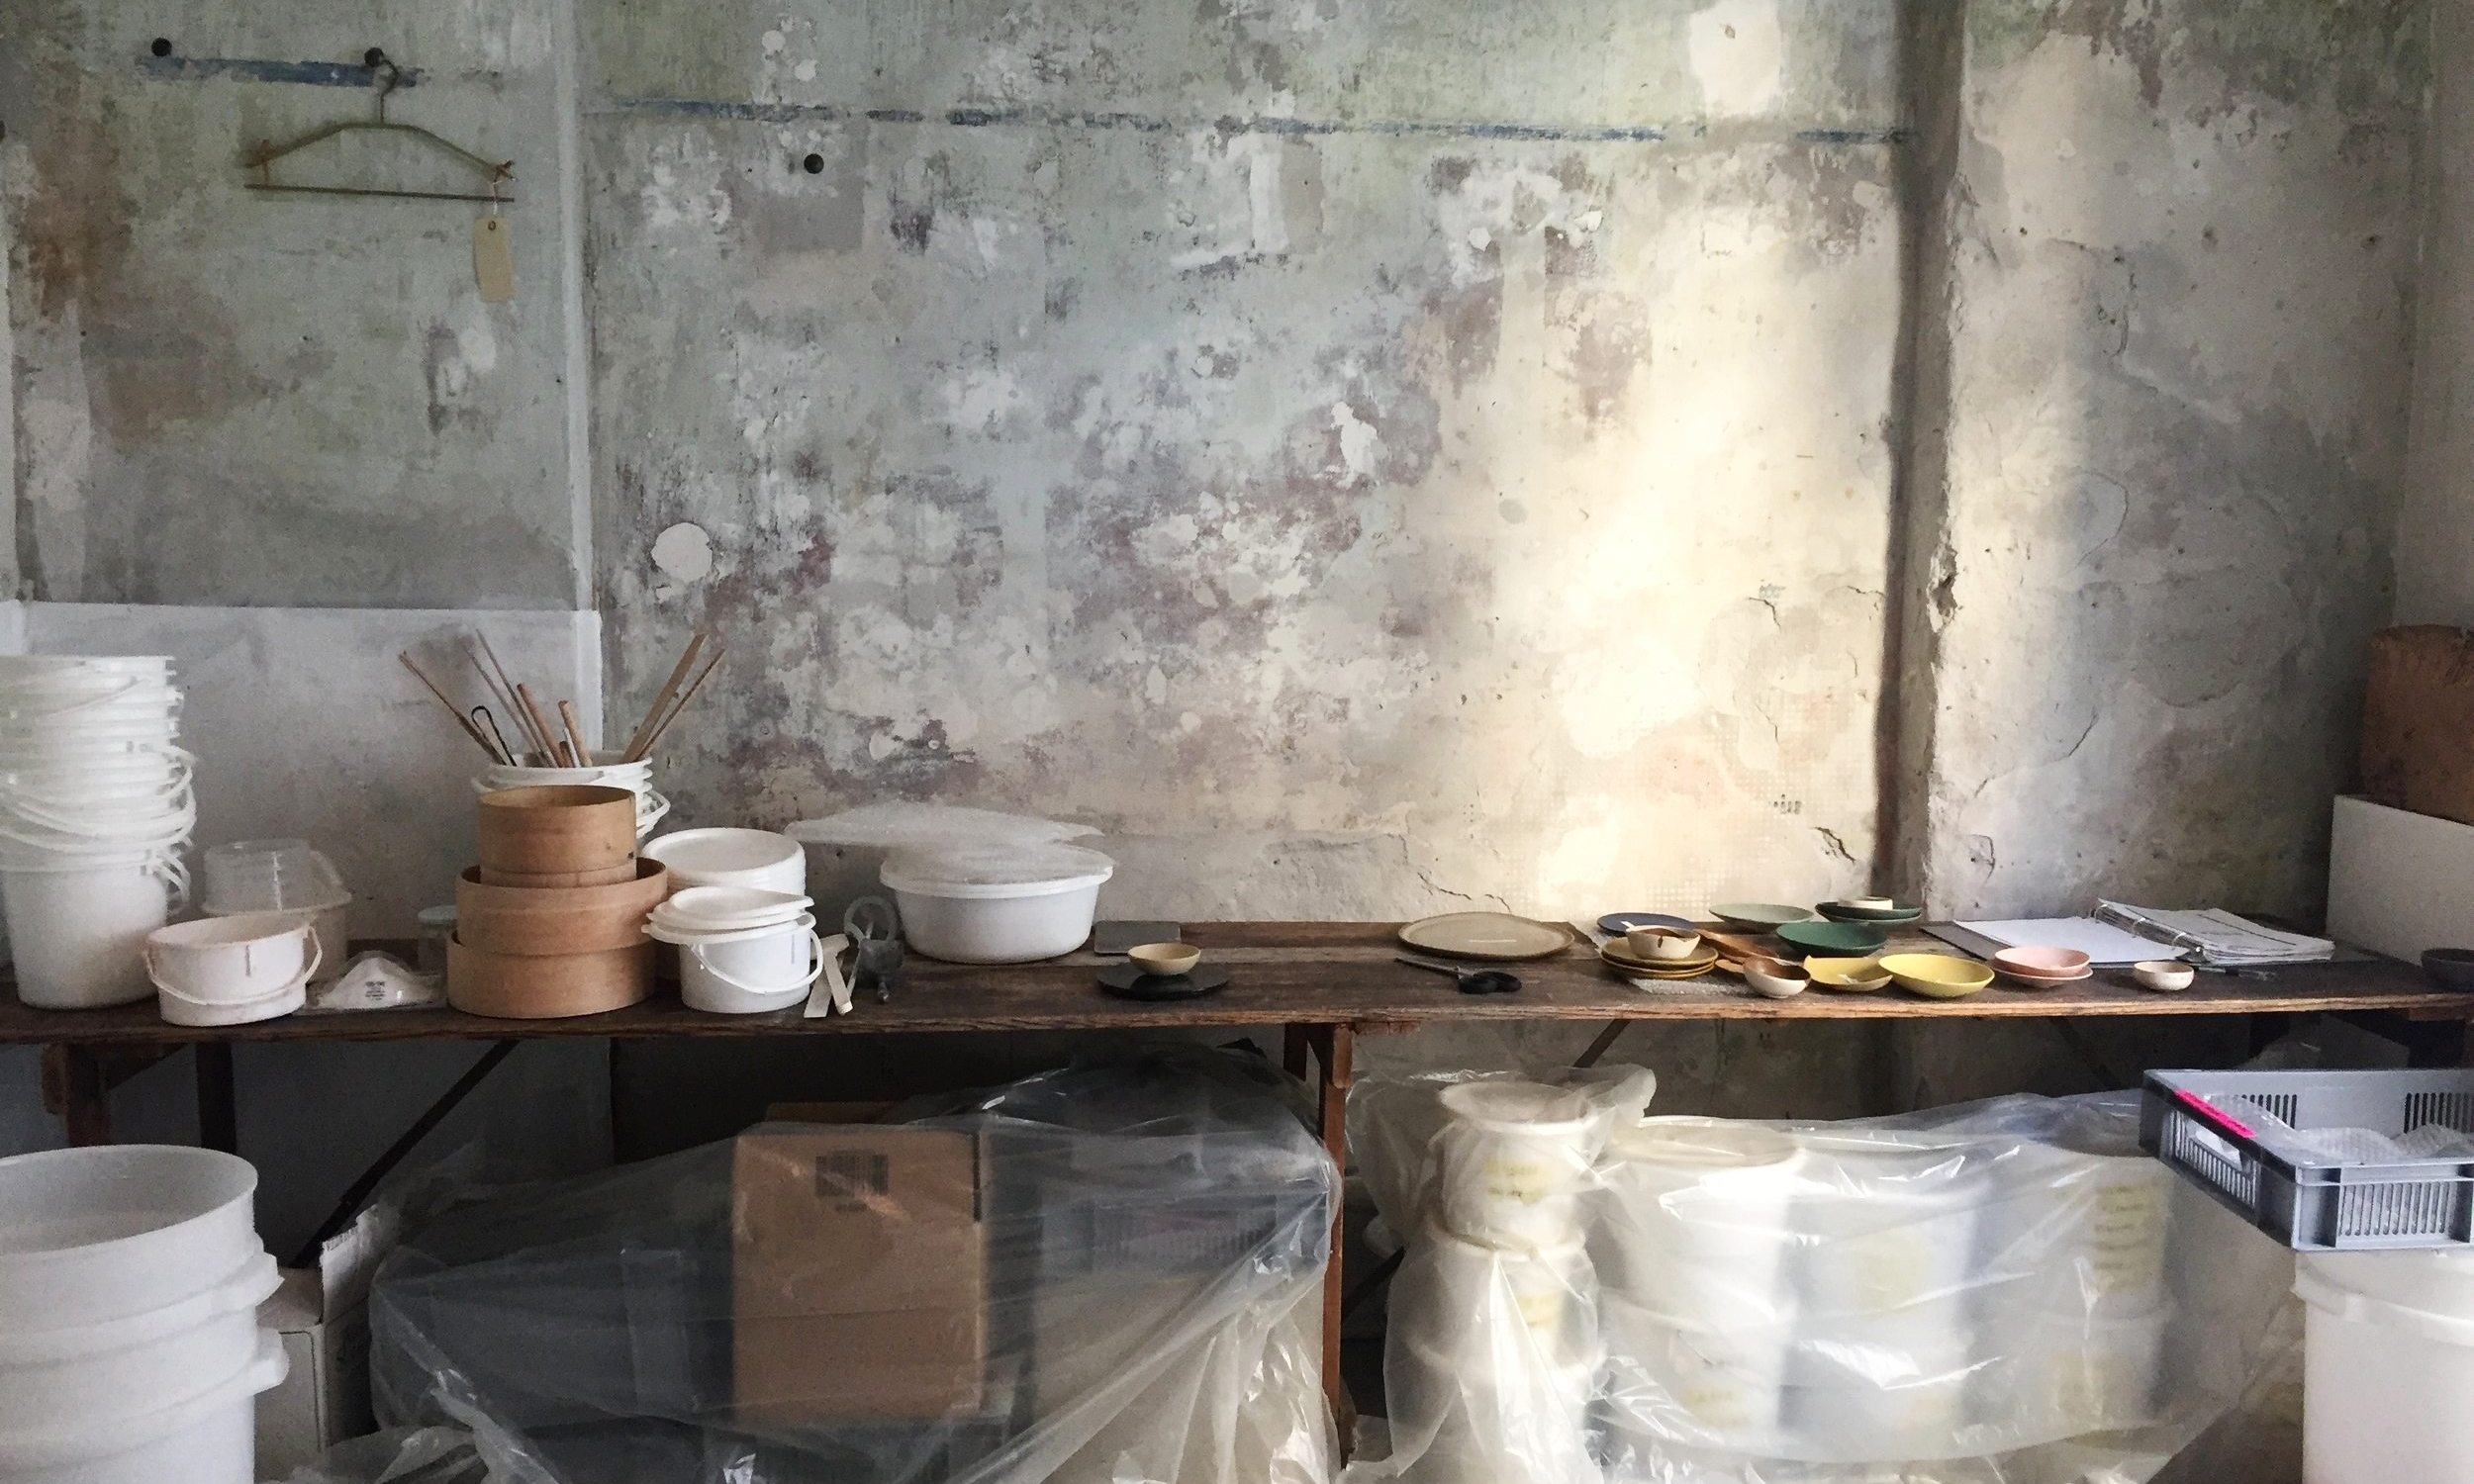 My temporary glaze making studio in Copenhagen.